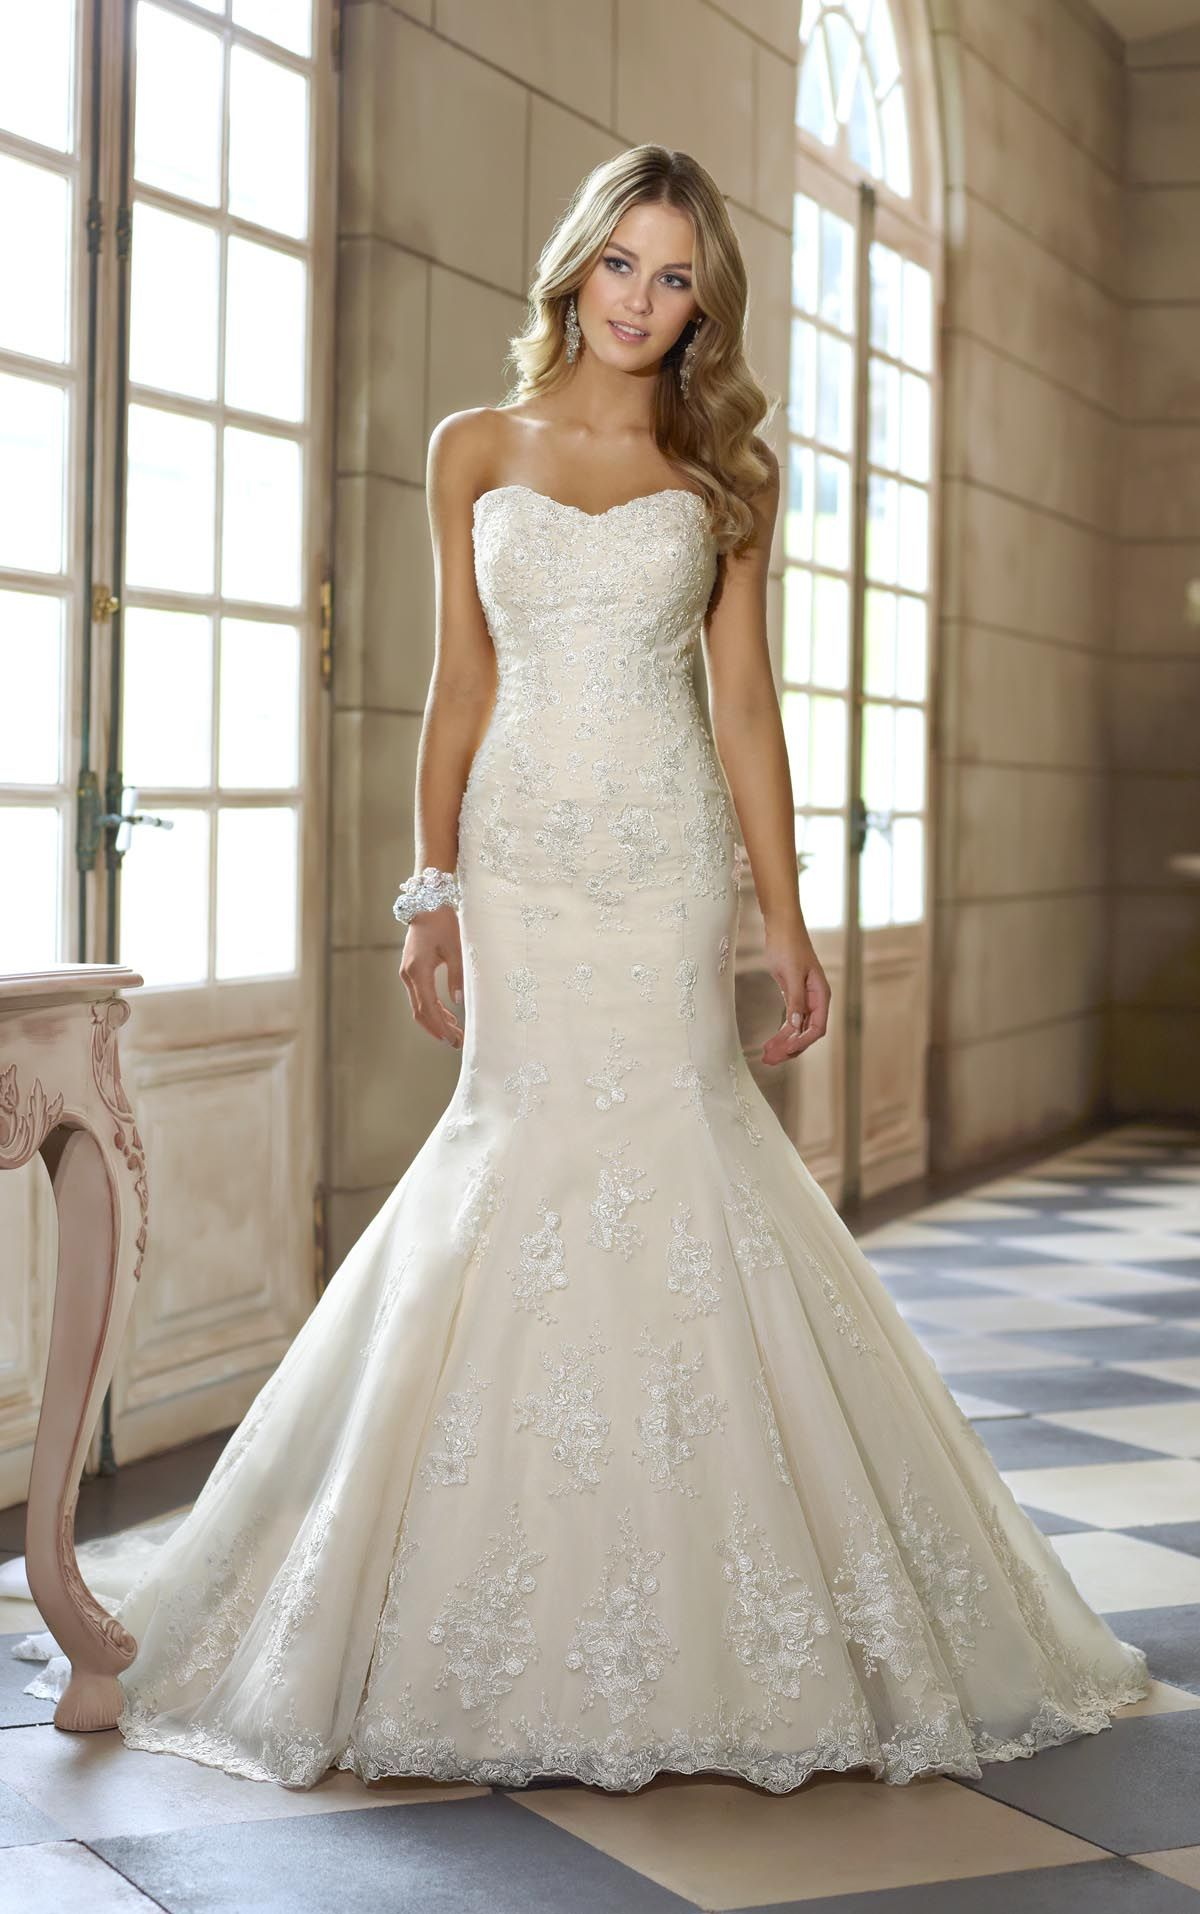 Stylish Ivory Lace Strapless Sweetheart Fit And Flare Beaded Wedding Dress I Like The Top Part